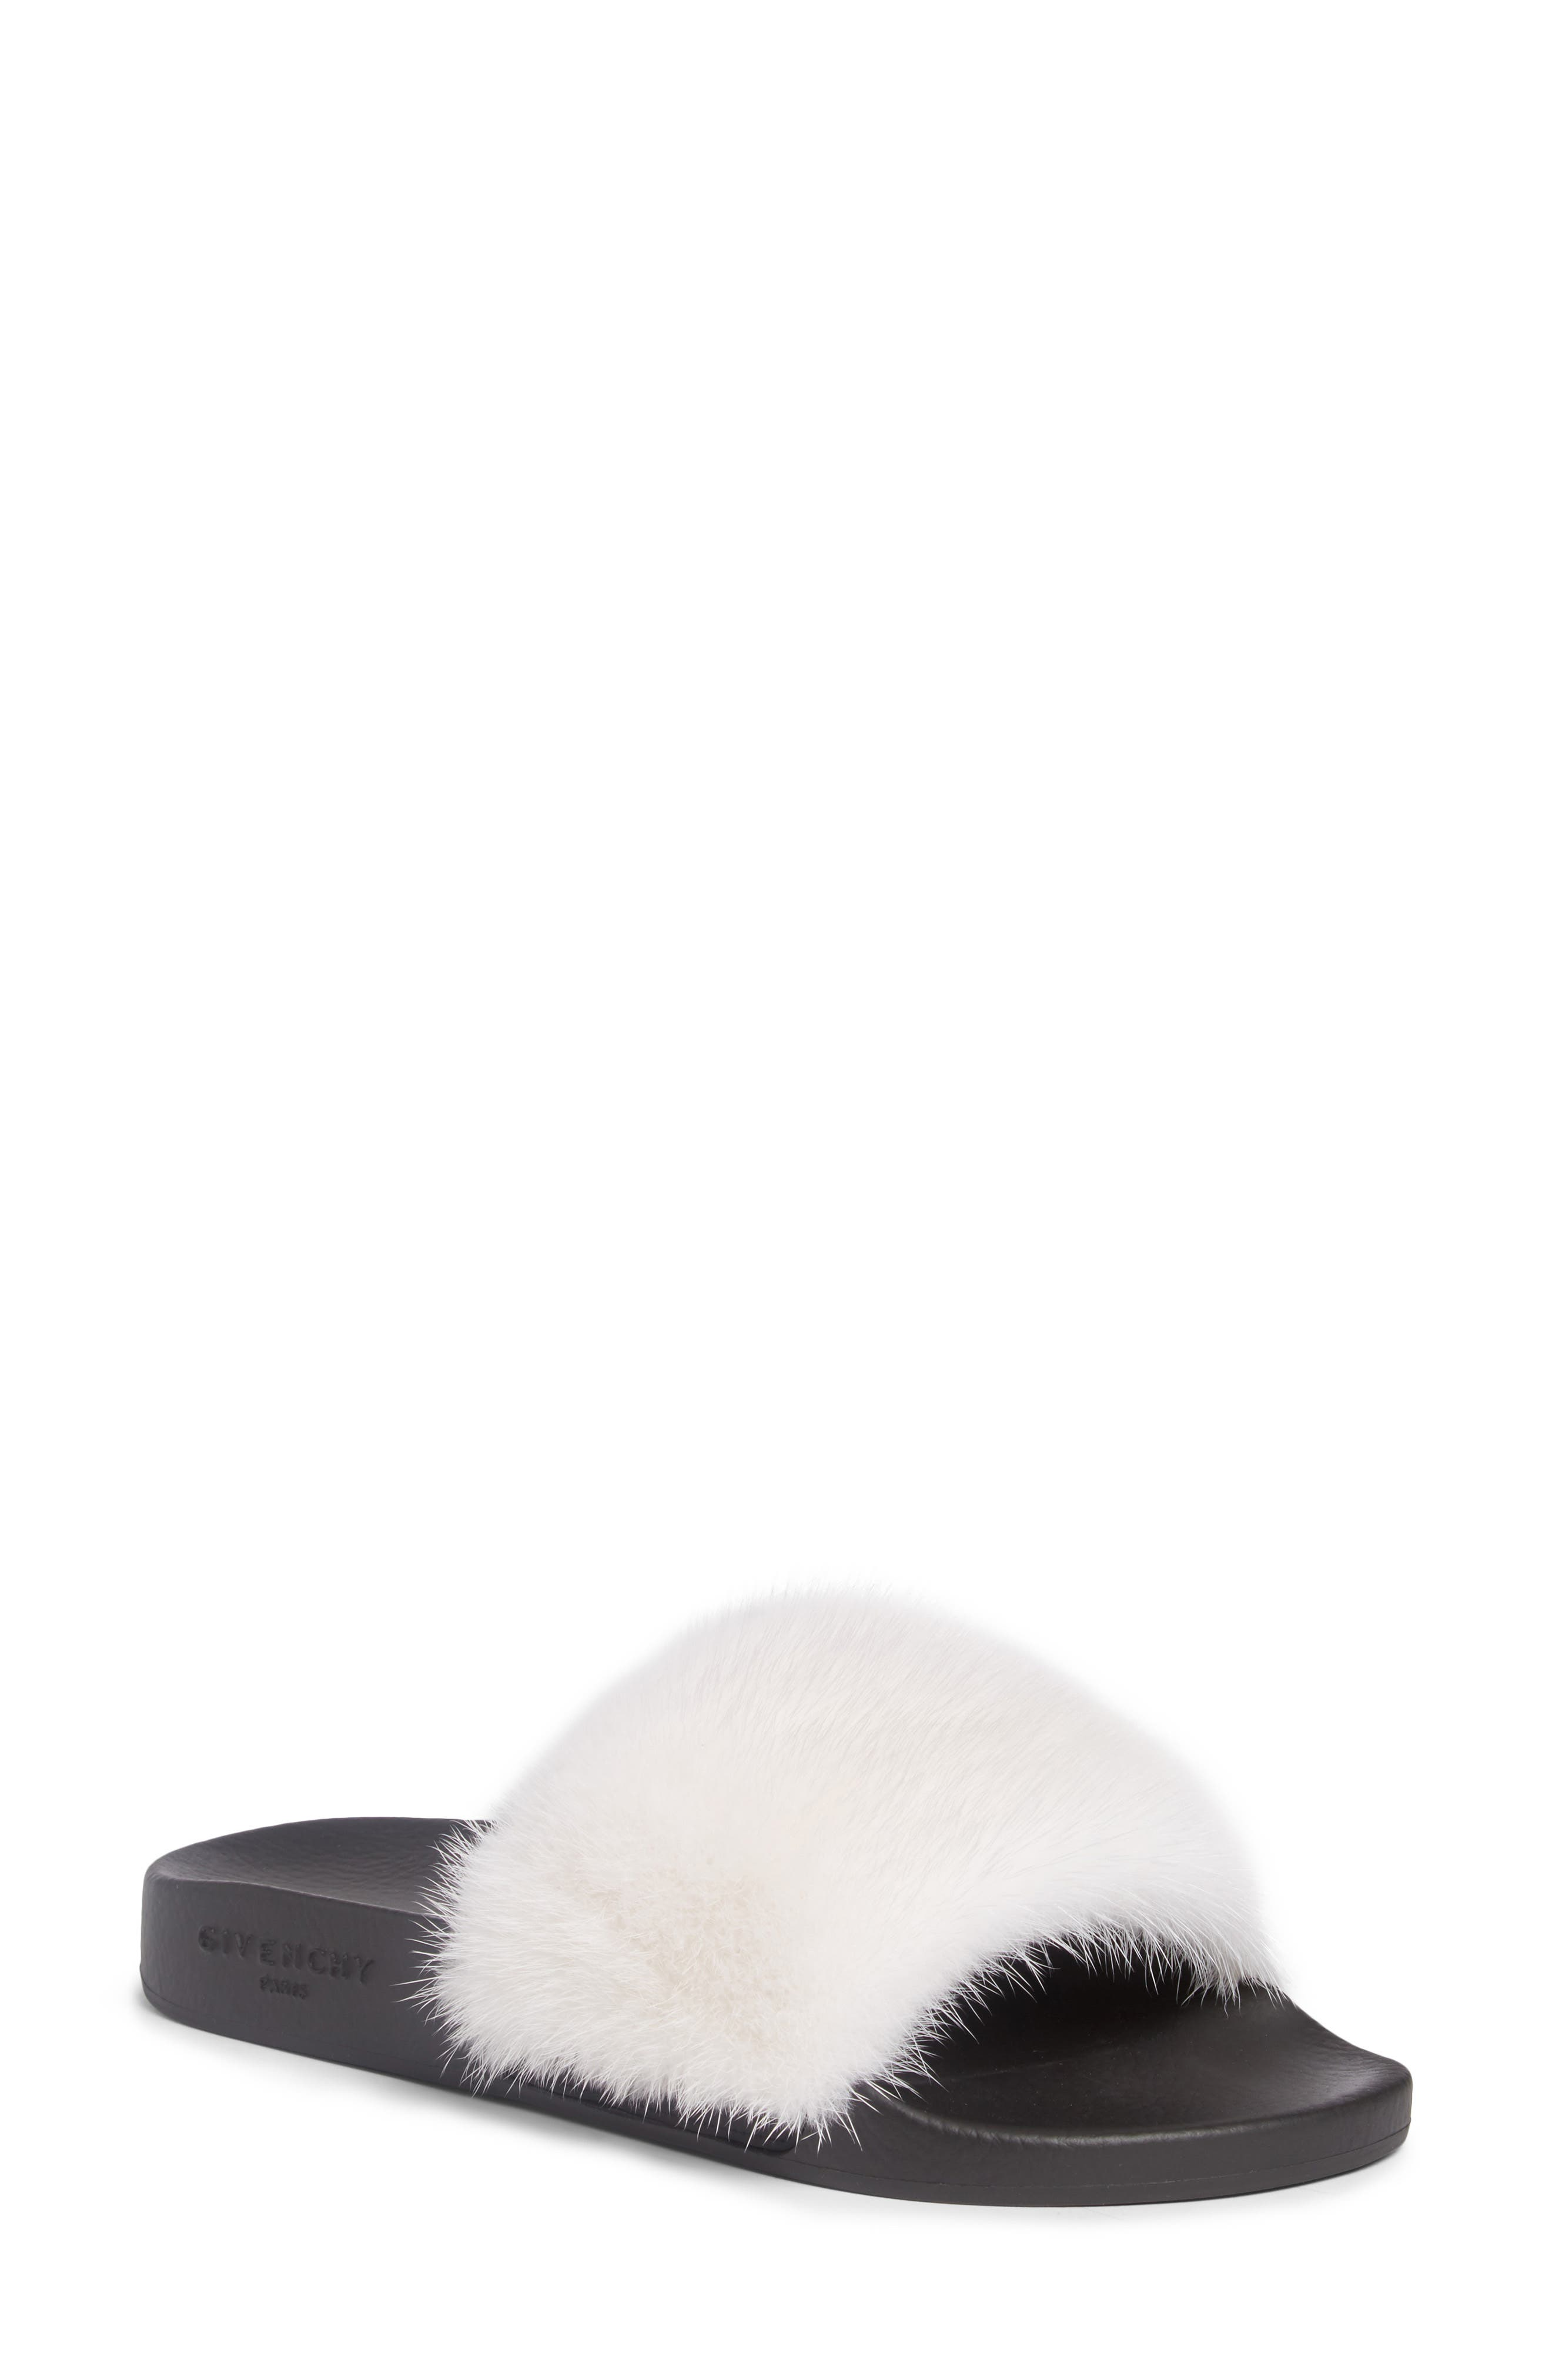 Givenchy Genuine Mink Fur Slide Sandal (Women)